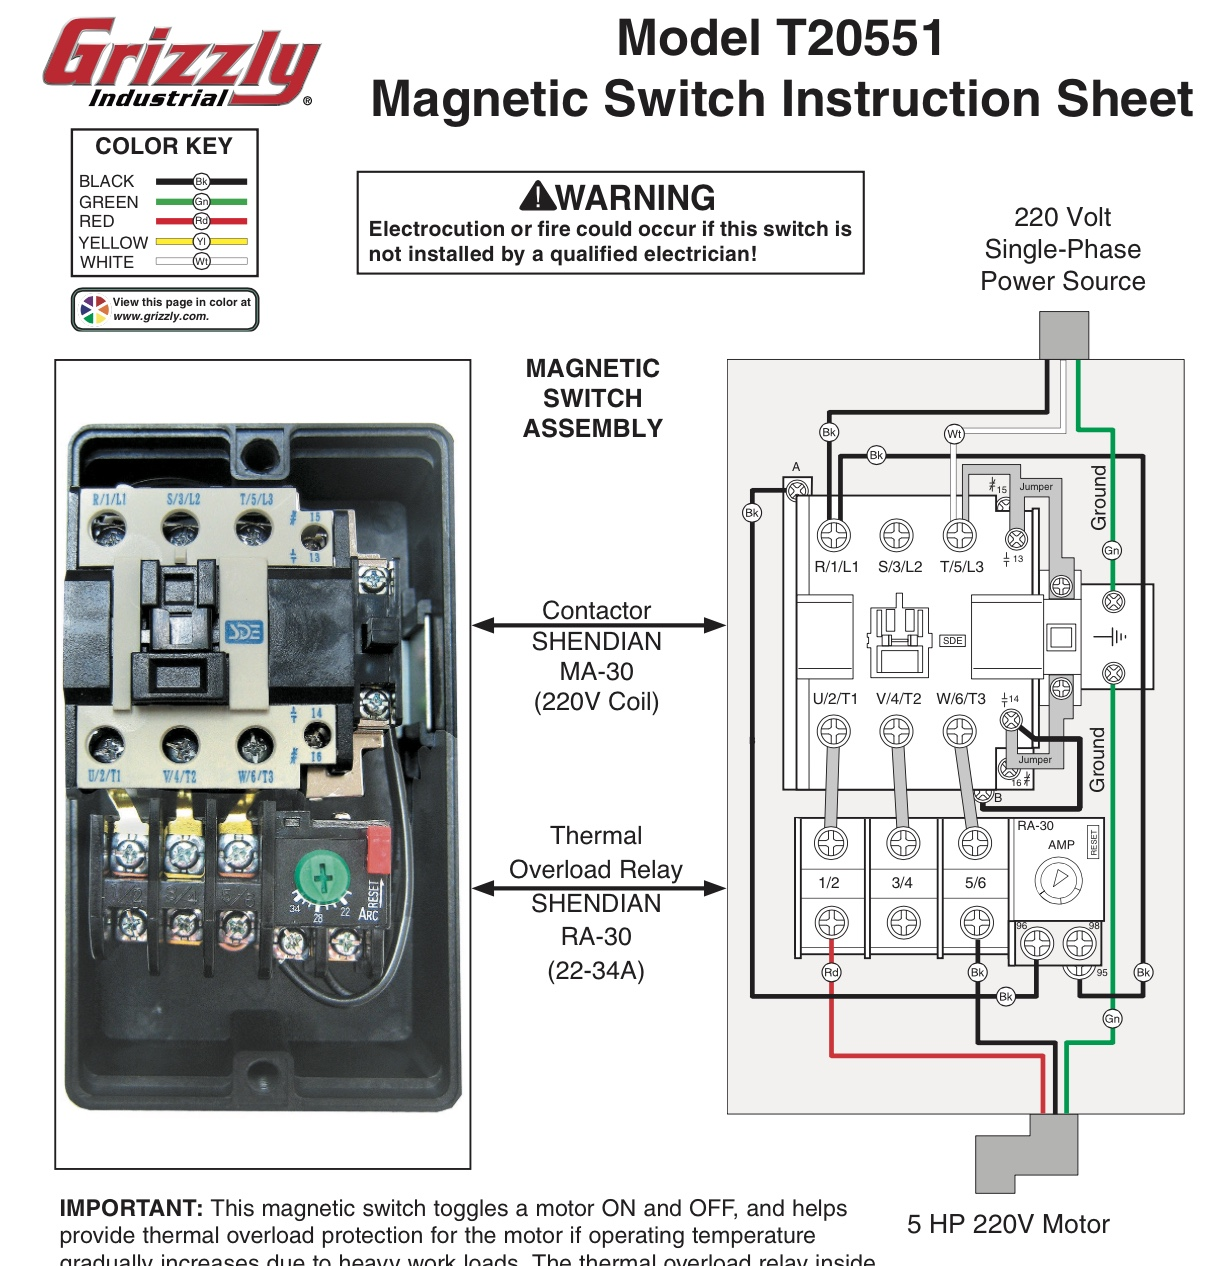 4 Wire 220v Single Phase Wiring Diagram. 4 Wire Gfci Wiring, 4 ...